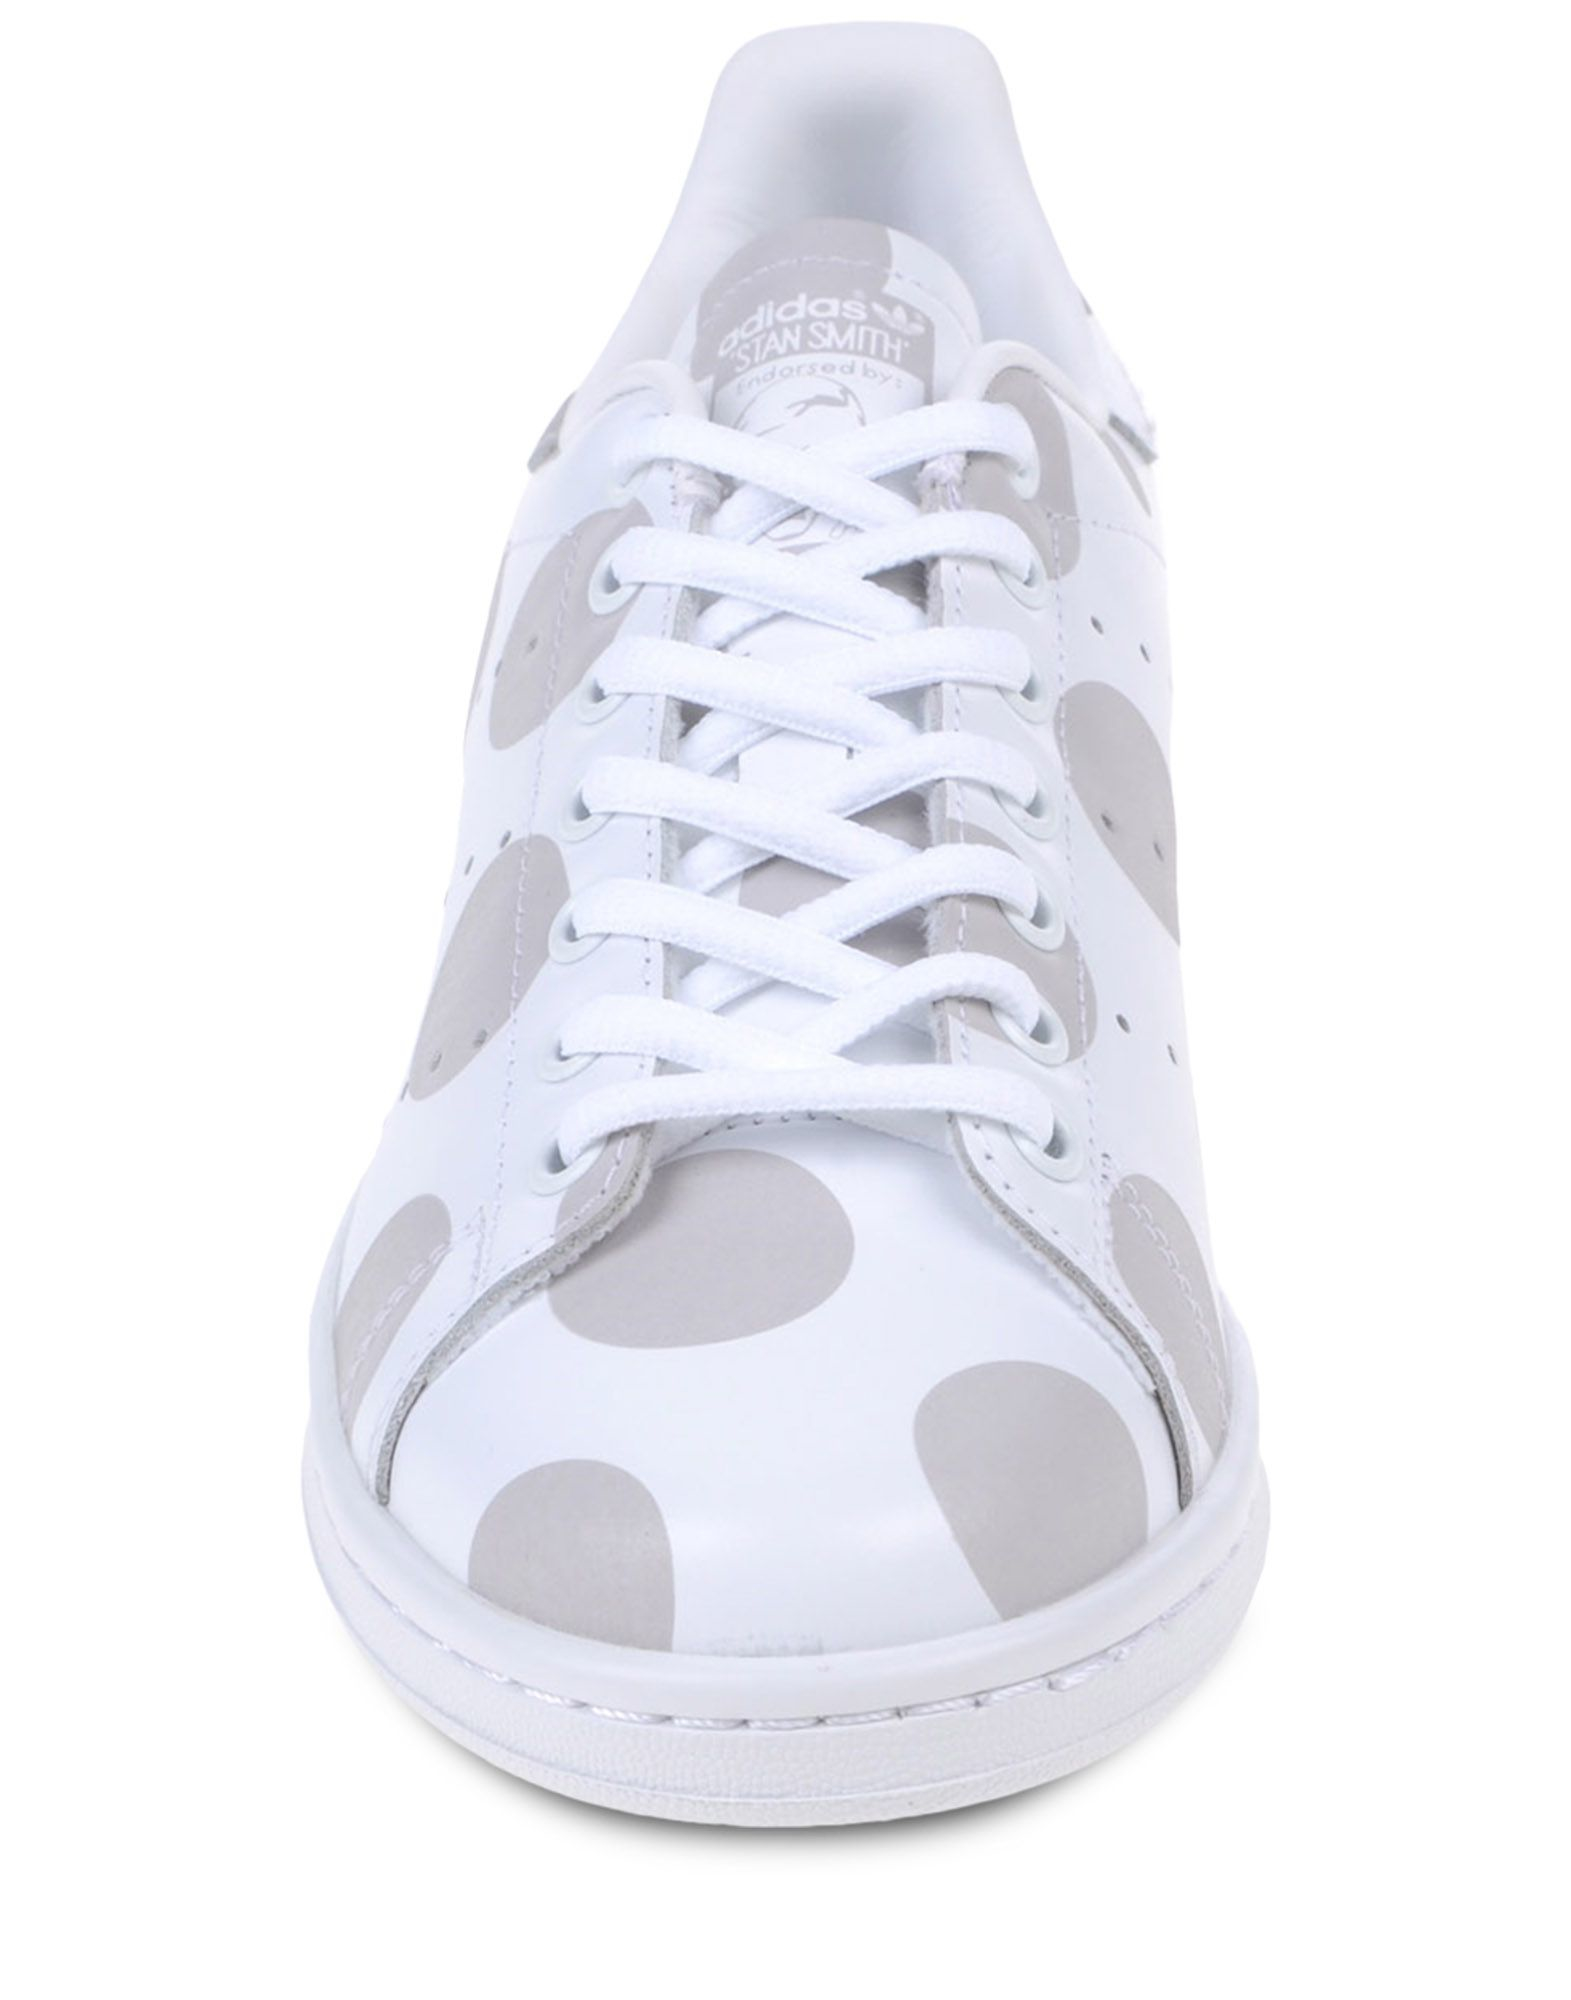 adidas originals dot print leather low top sneakers in